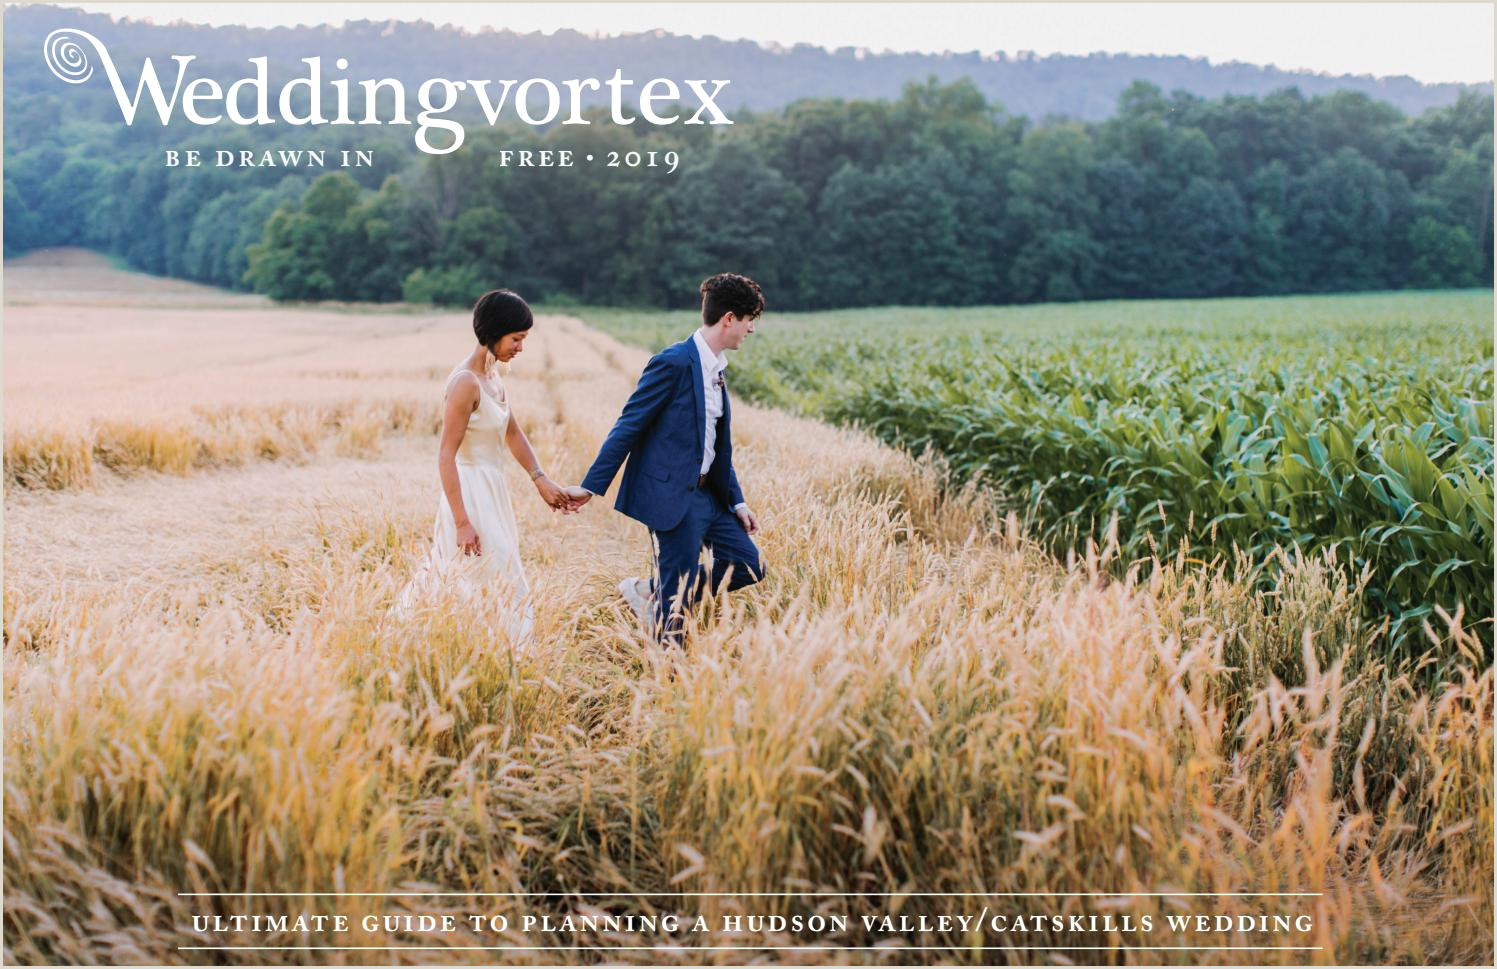 Pine Hollow Country Club Wedding Prices Weddingvortex 2019 Guide to Hudson Valley Catskills Weddings